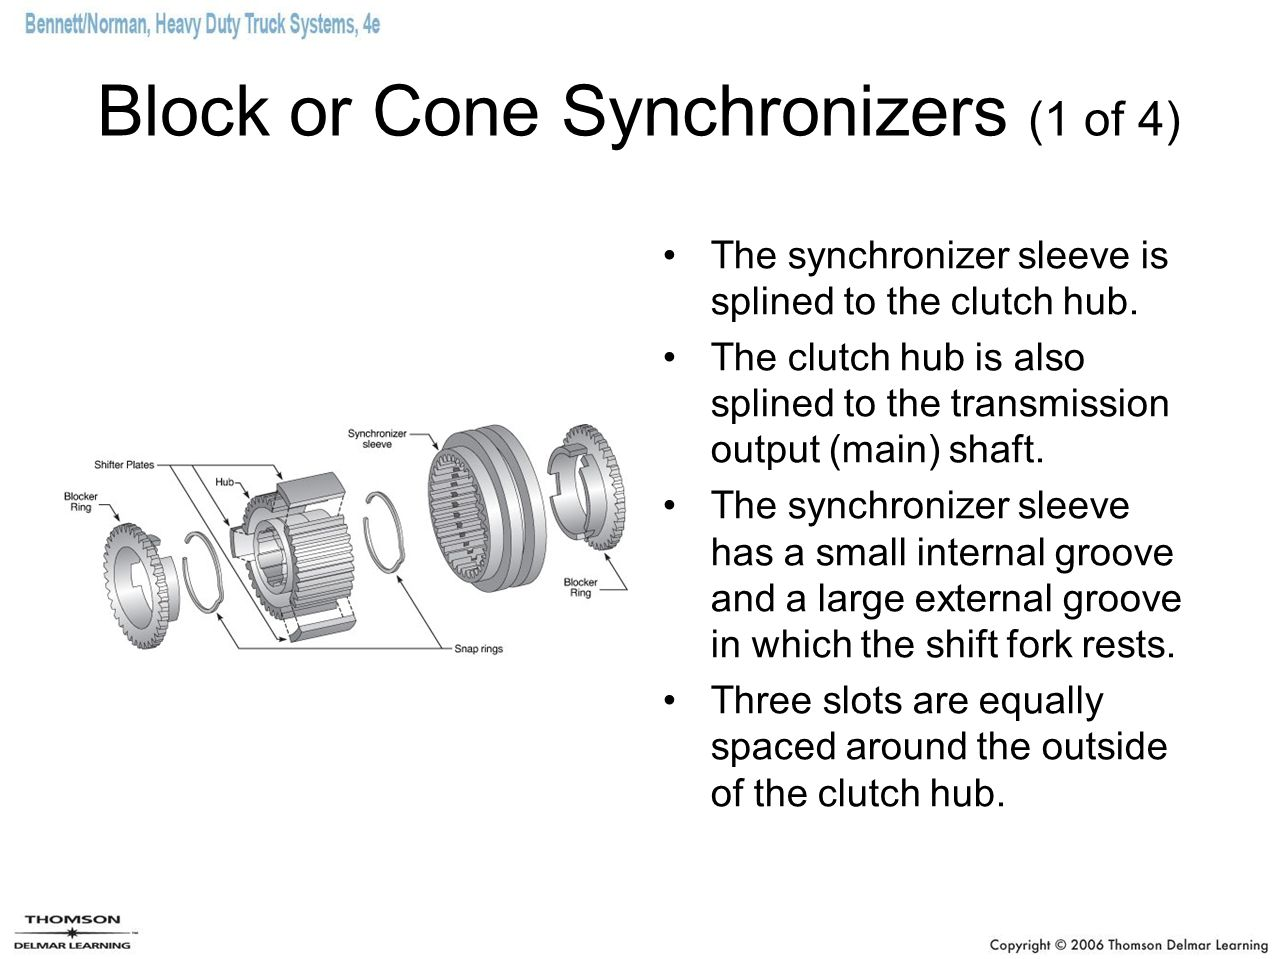 Block or Cone Synchronizers (1 of 4)